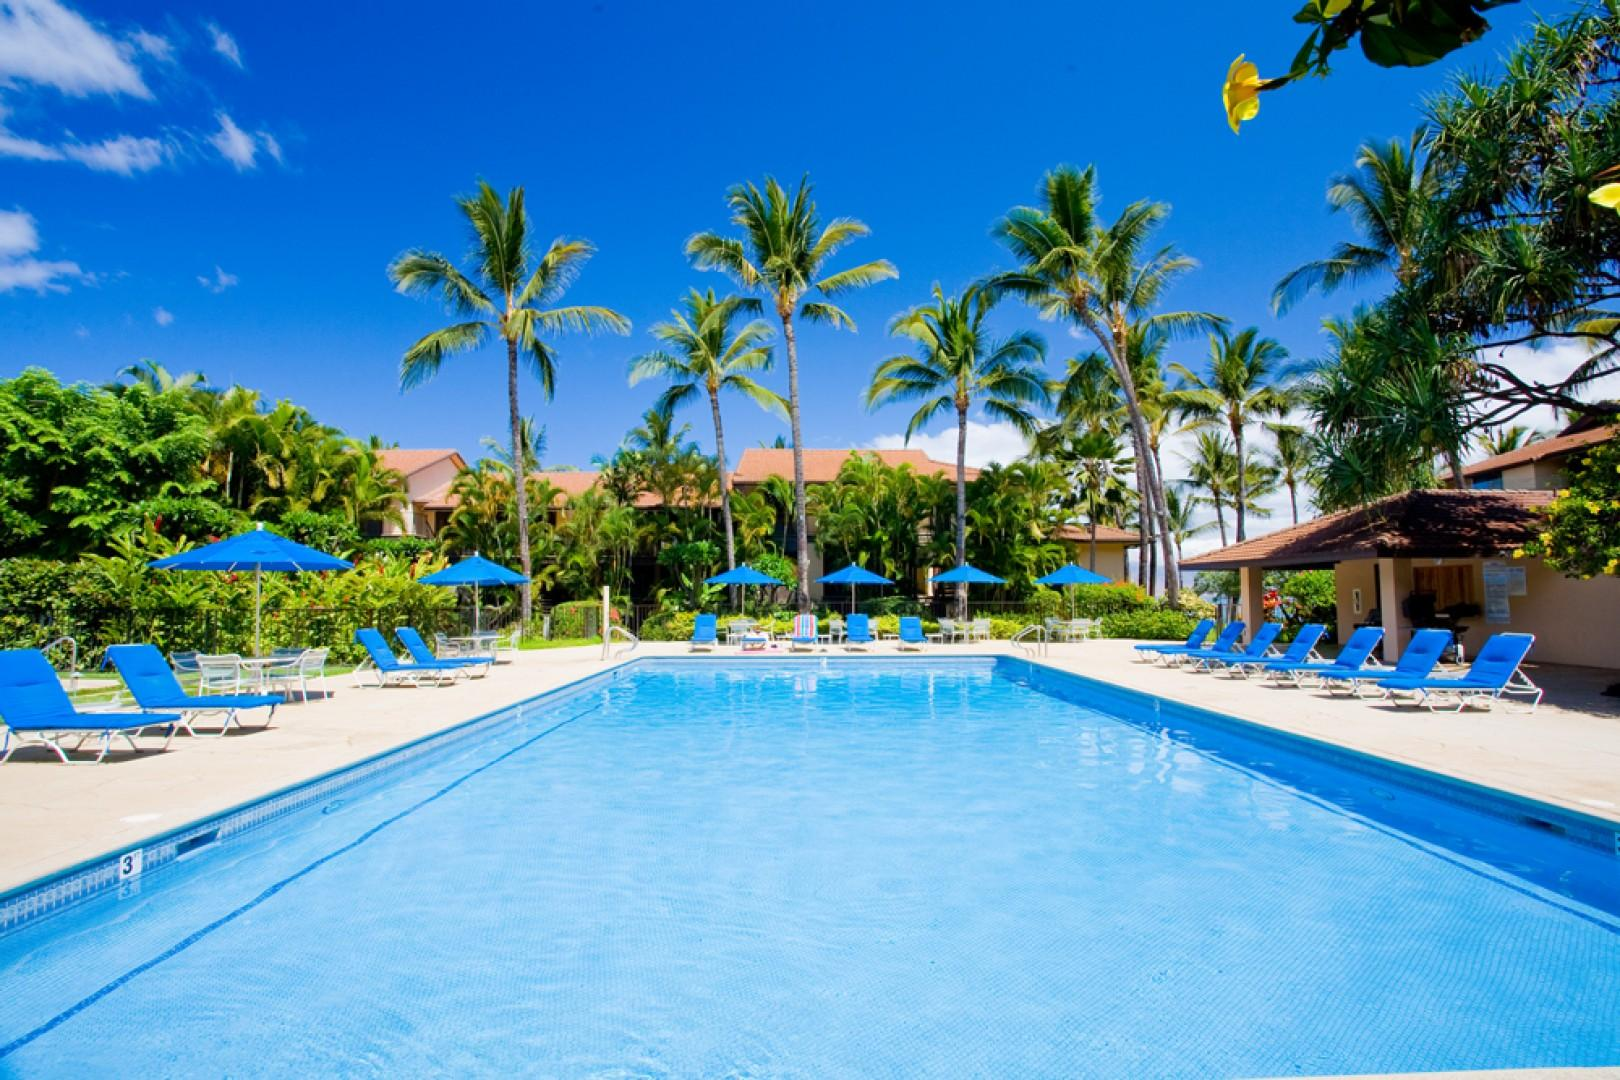 One of Two Large Gated and Heated Swimming Pools and Hot Tubs at Makena Surf Resort. E301 is immediately adjacent to this pool area.